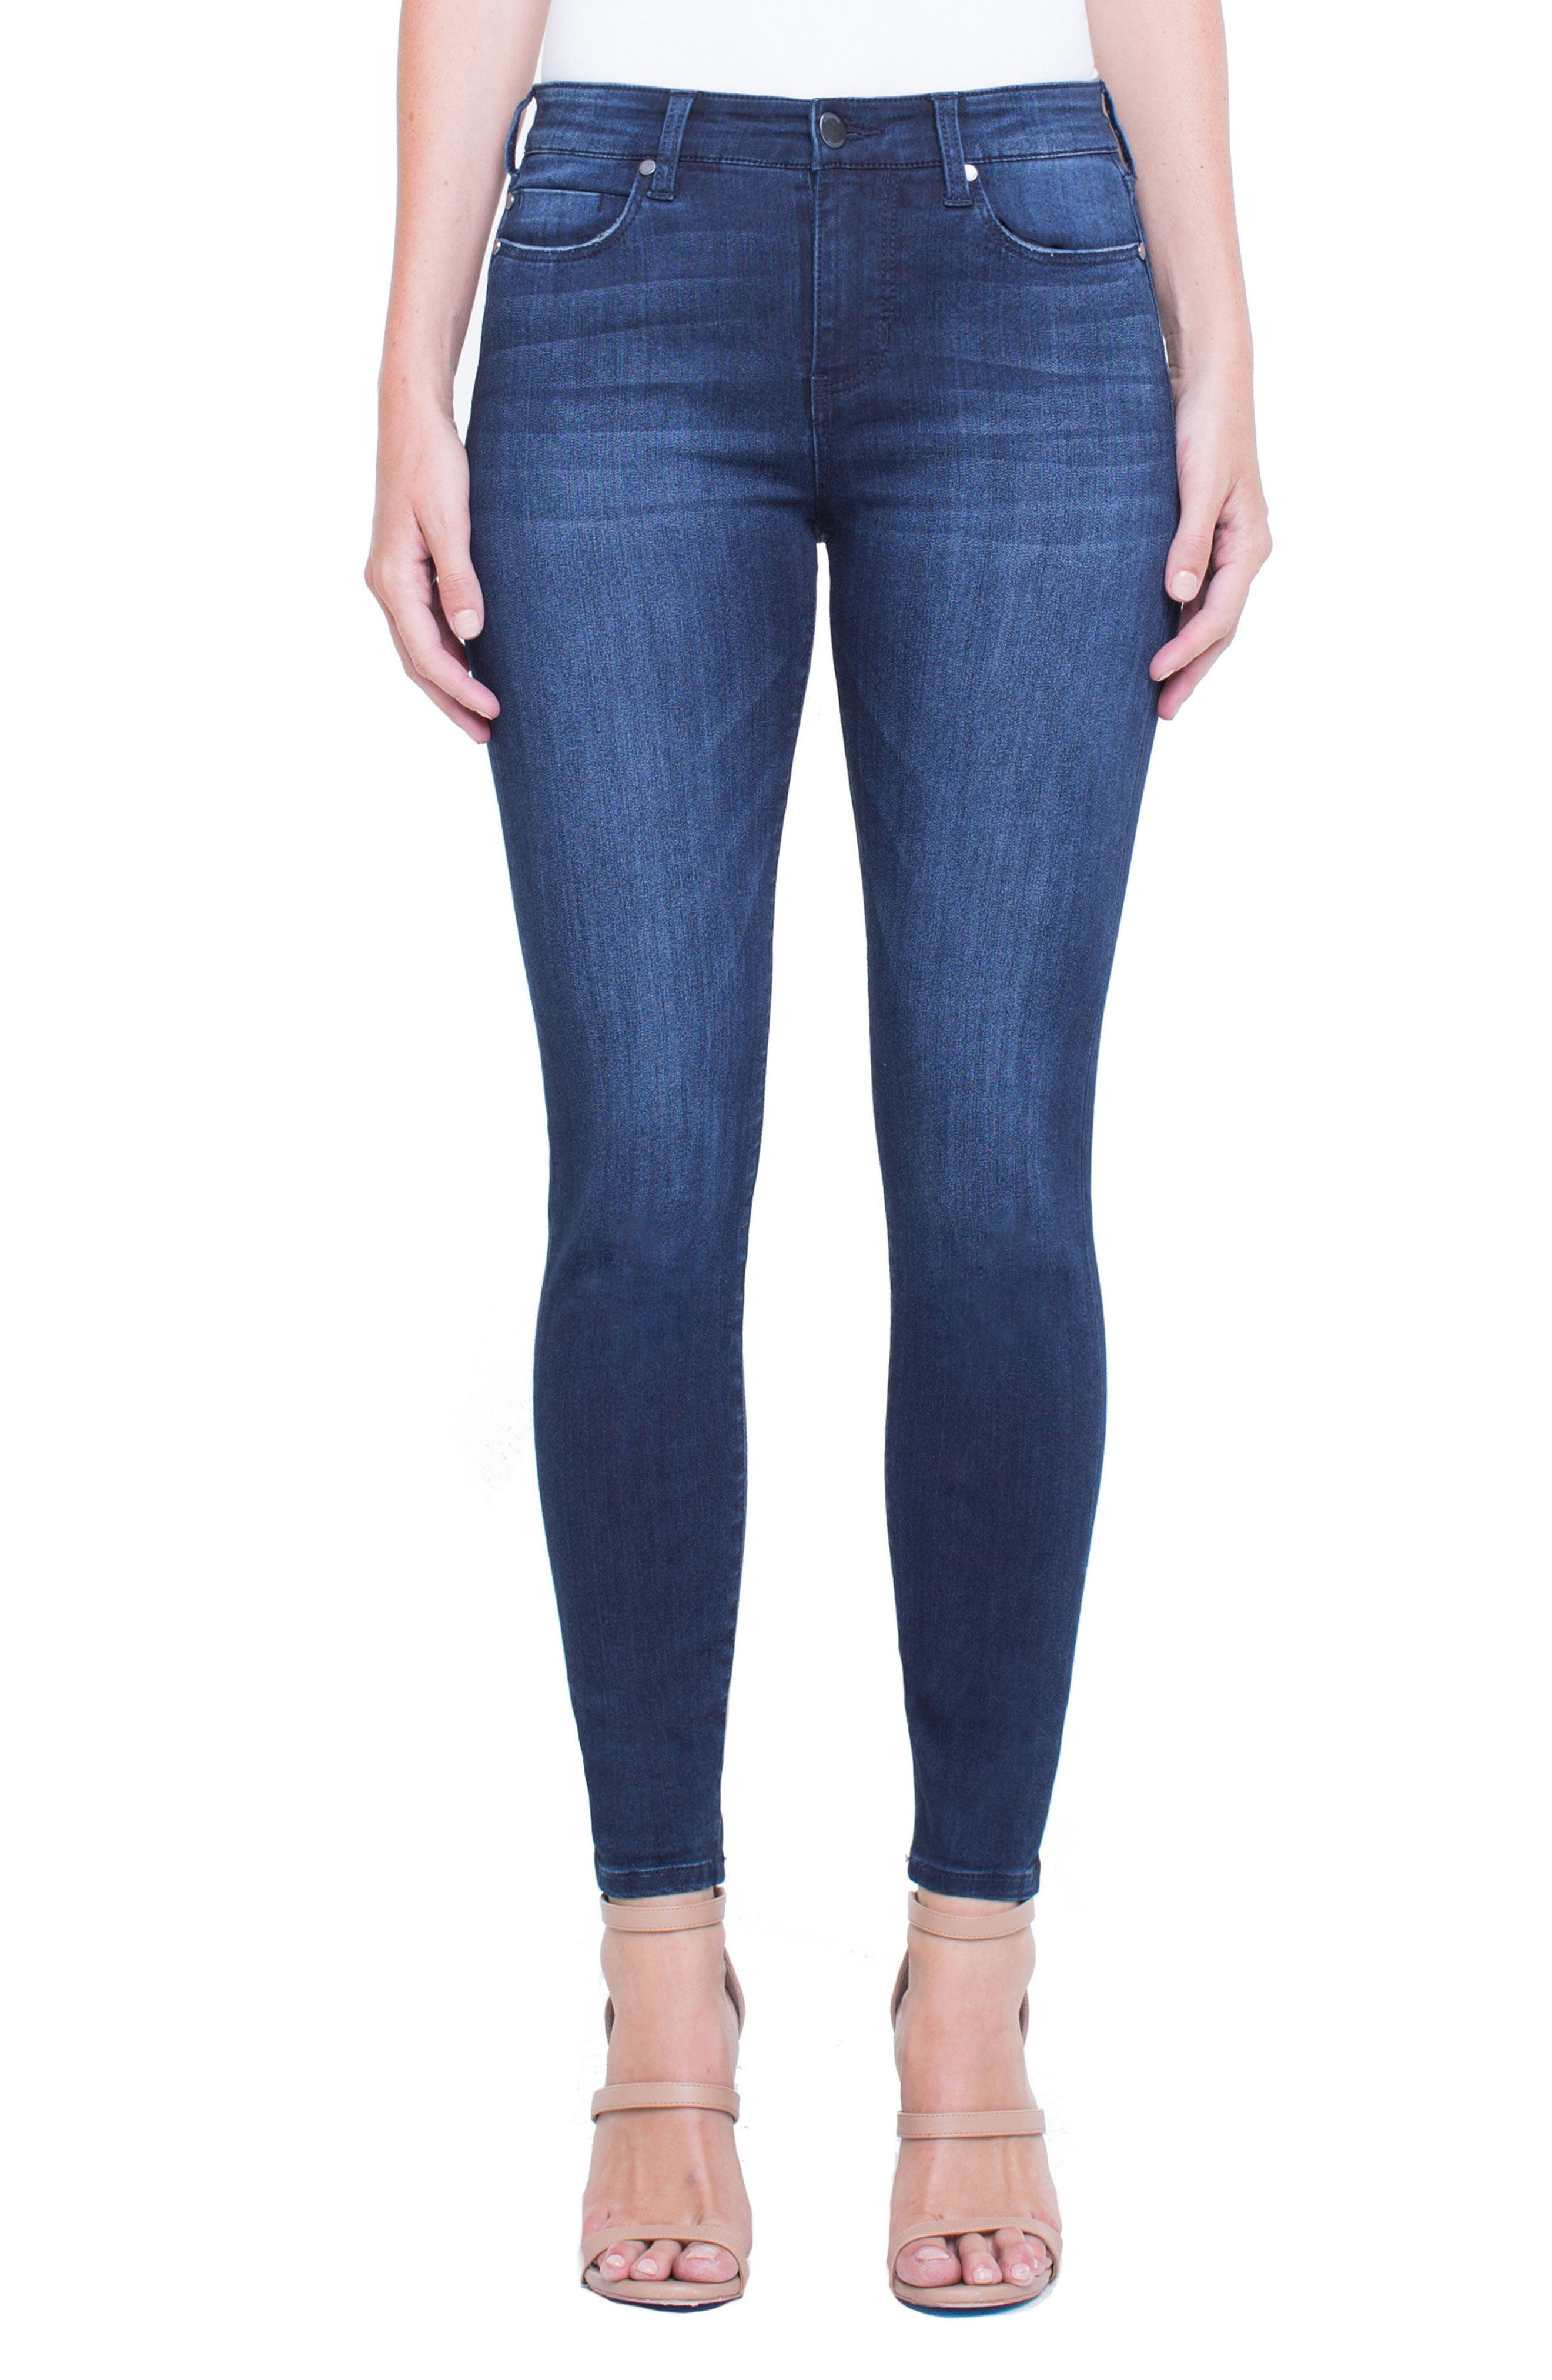 Jeans Company Penny Ankle Skinny Jeans,                         Main,                         color, Westport Wash